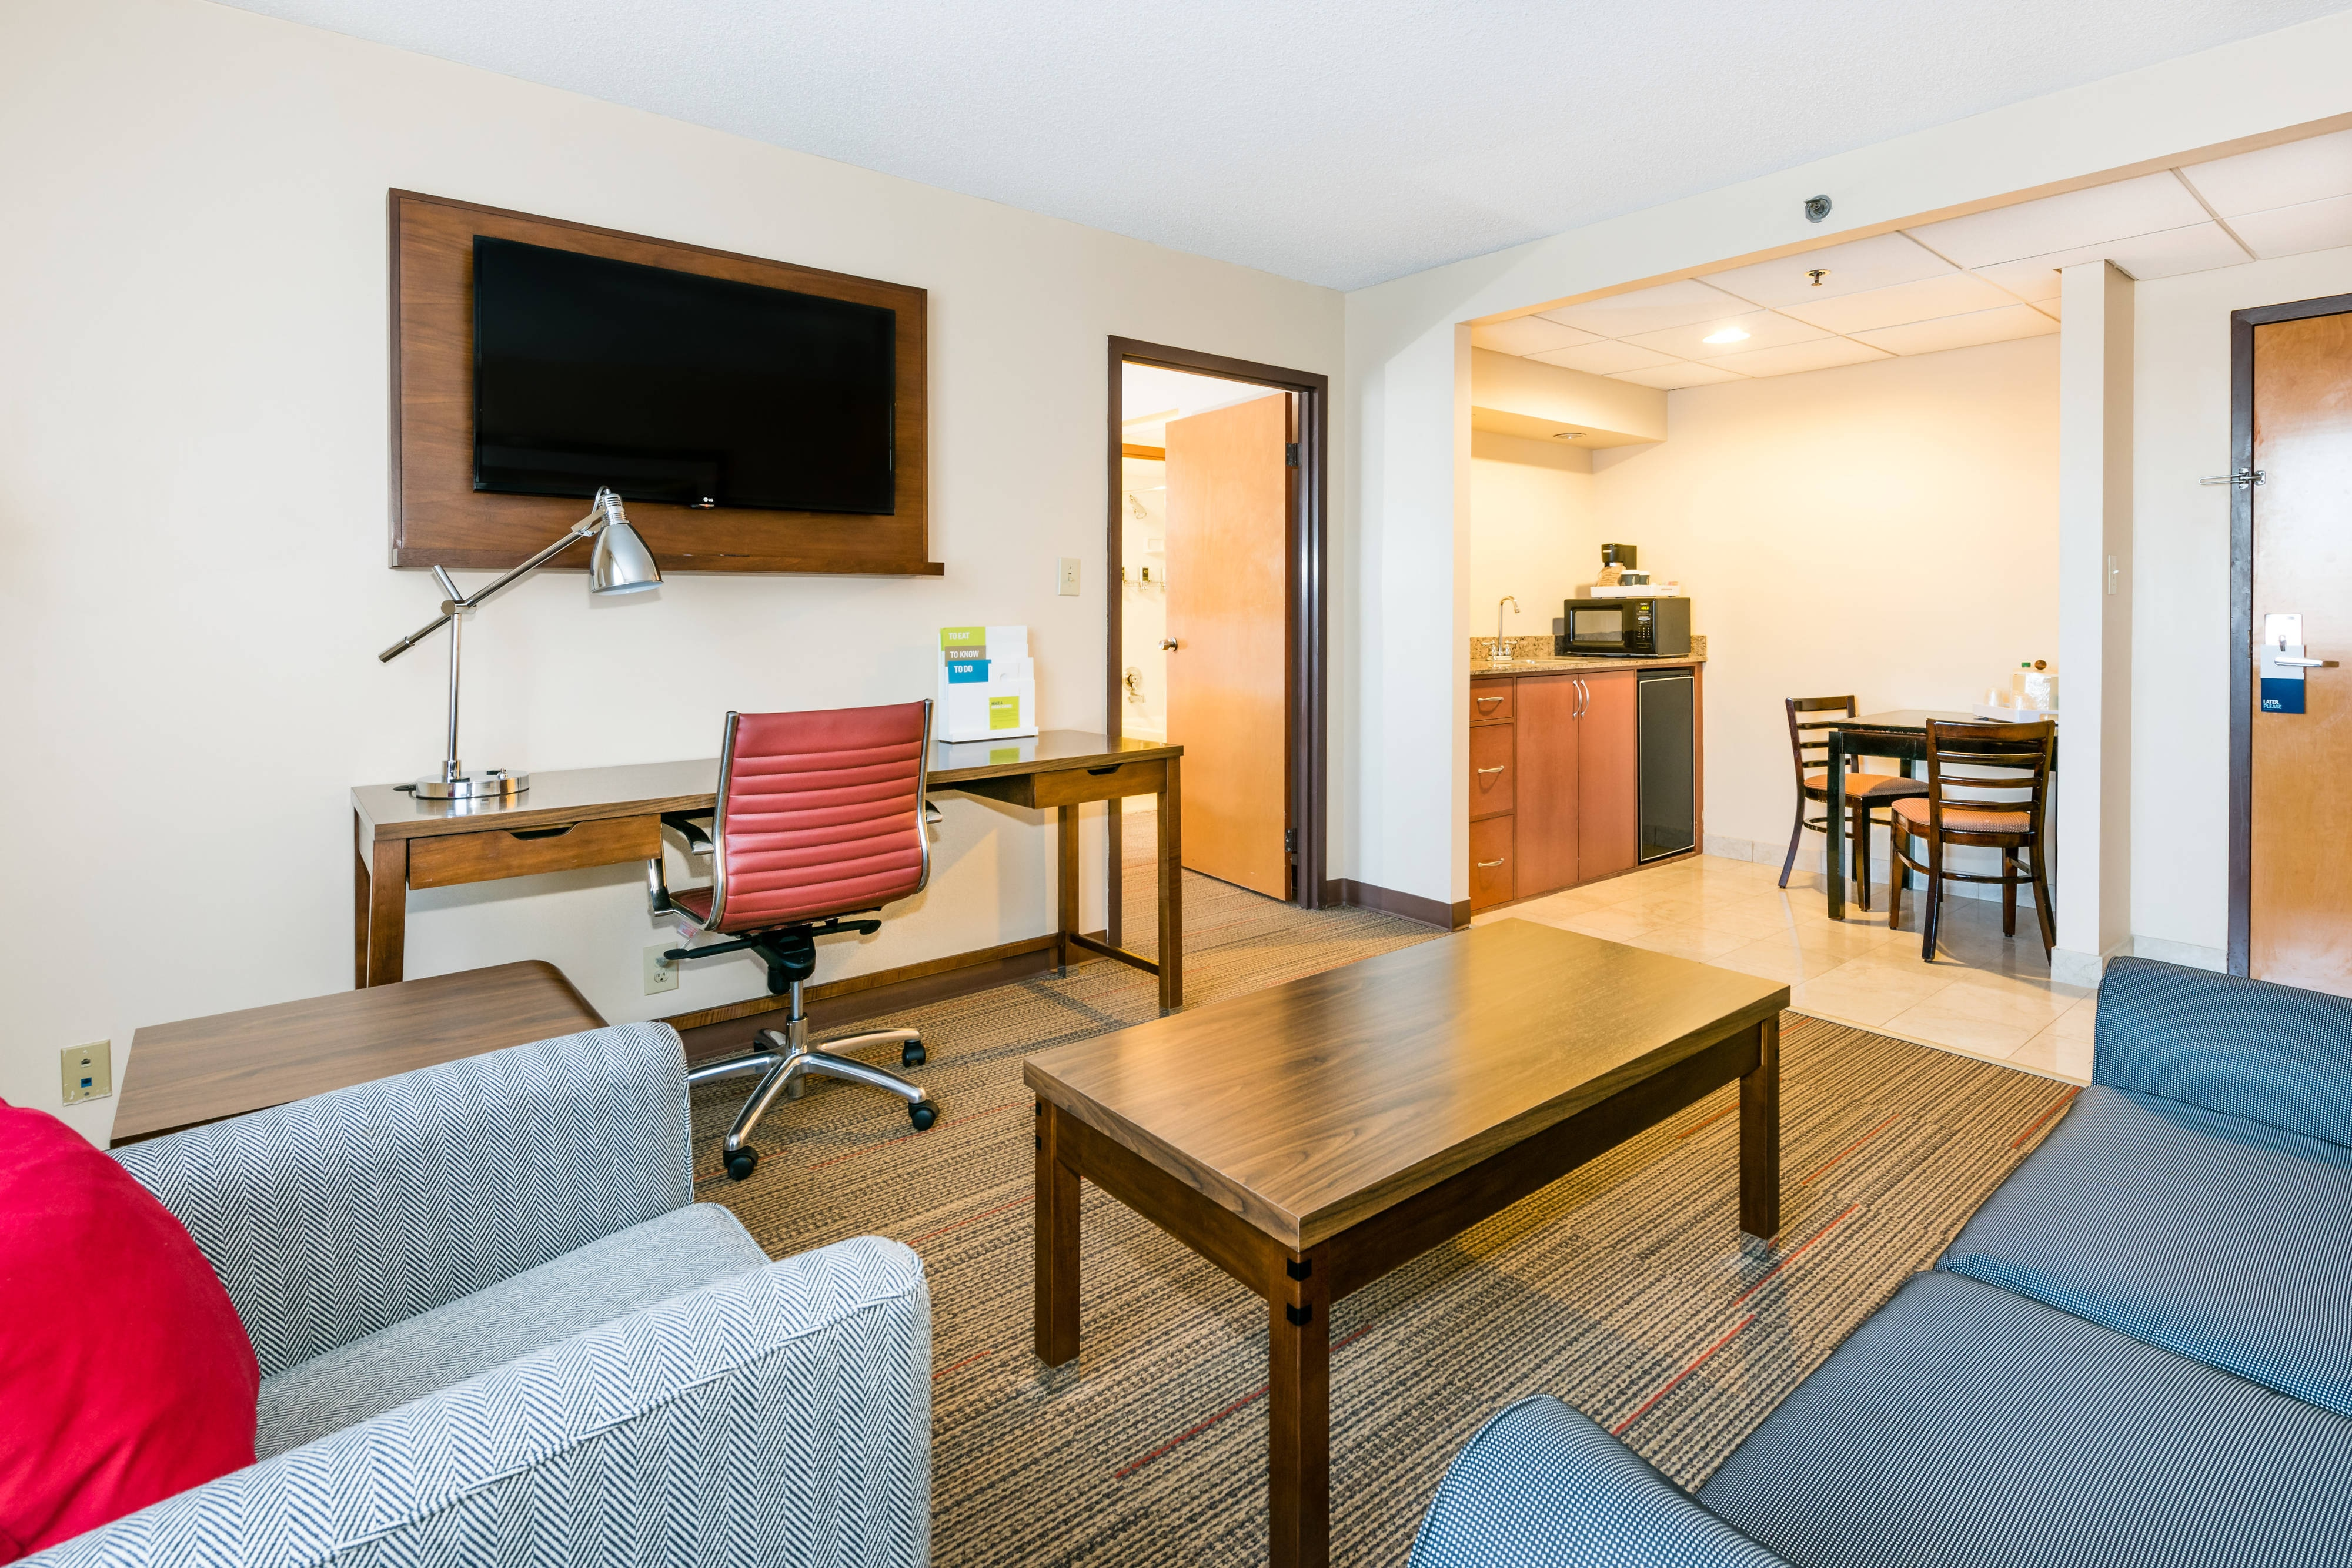 Suite - Kitchenette and Parlor